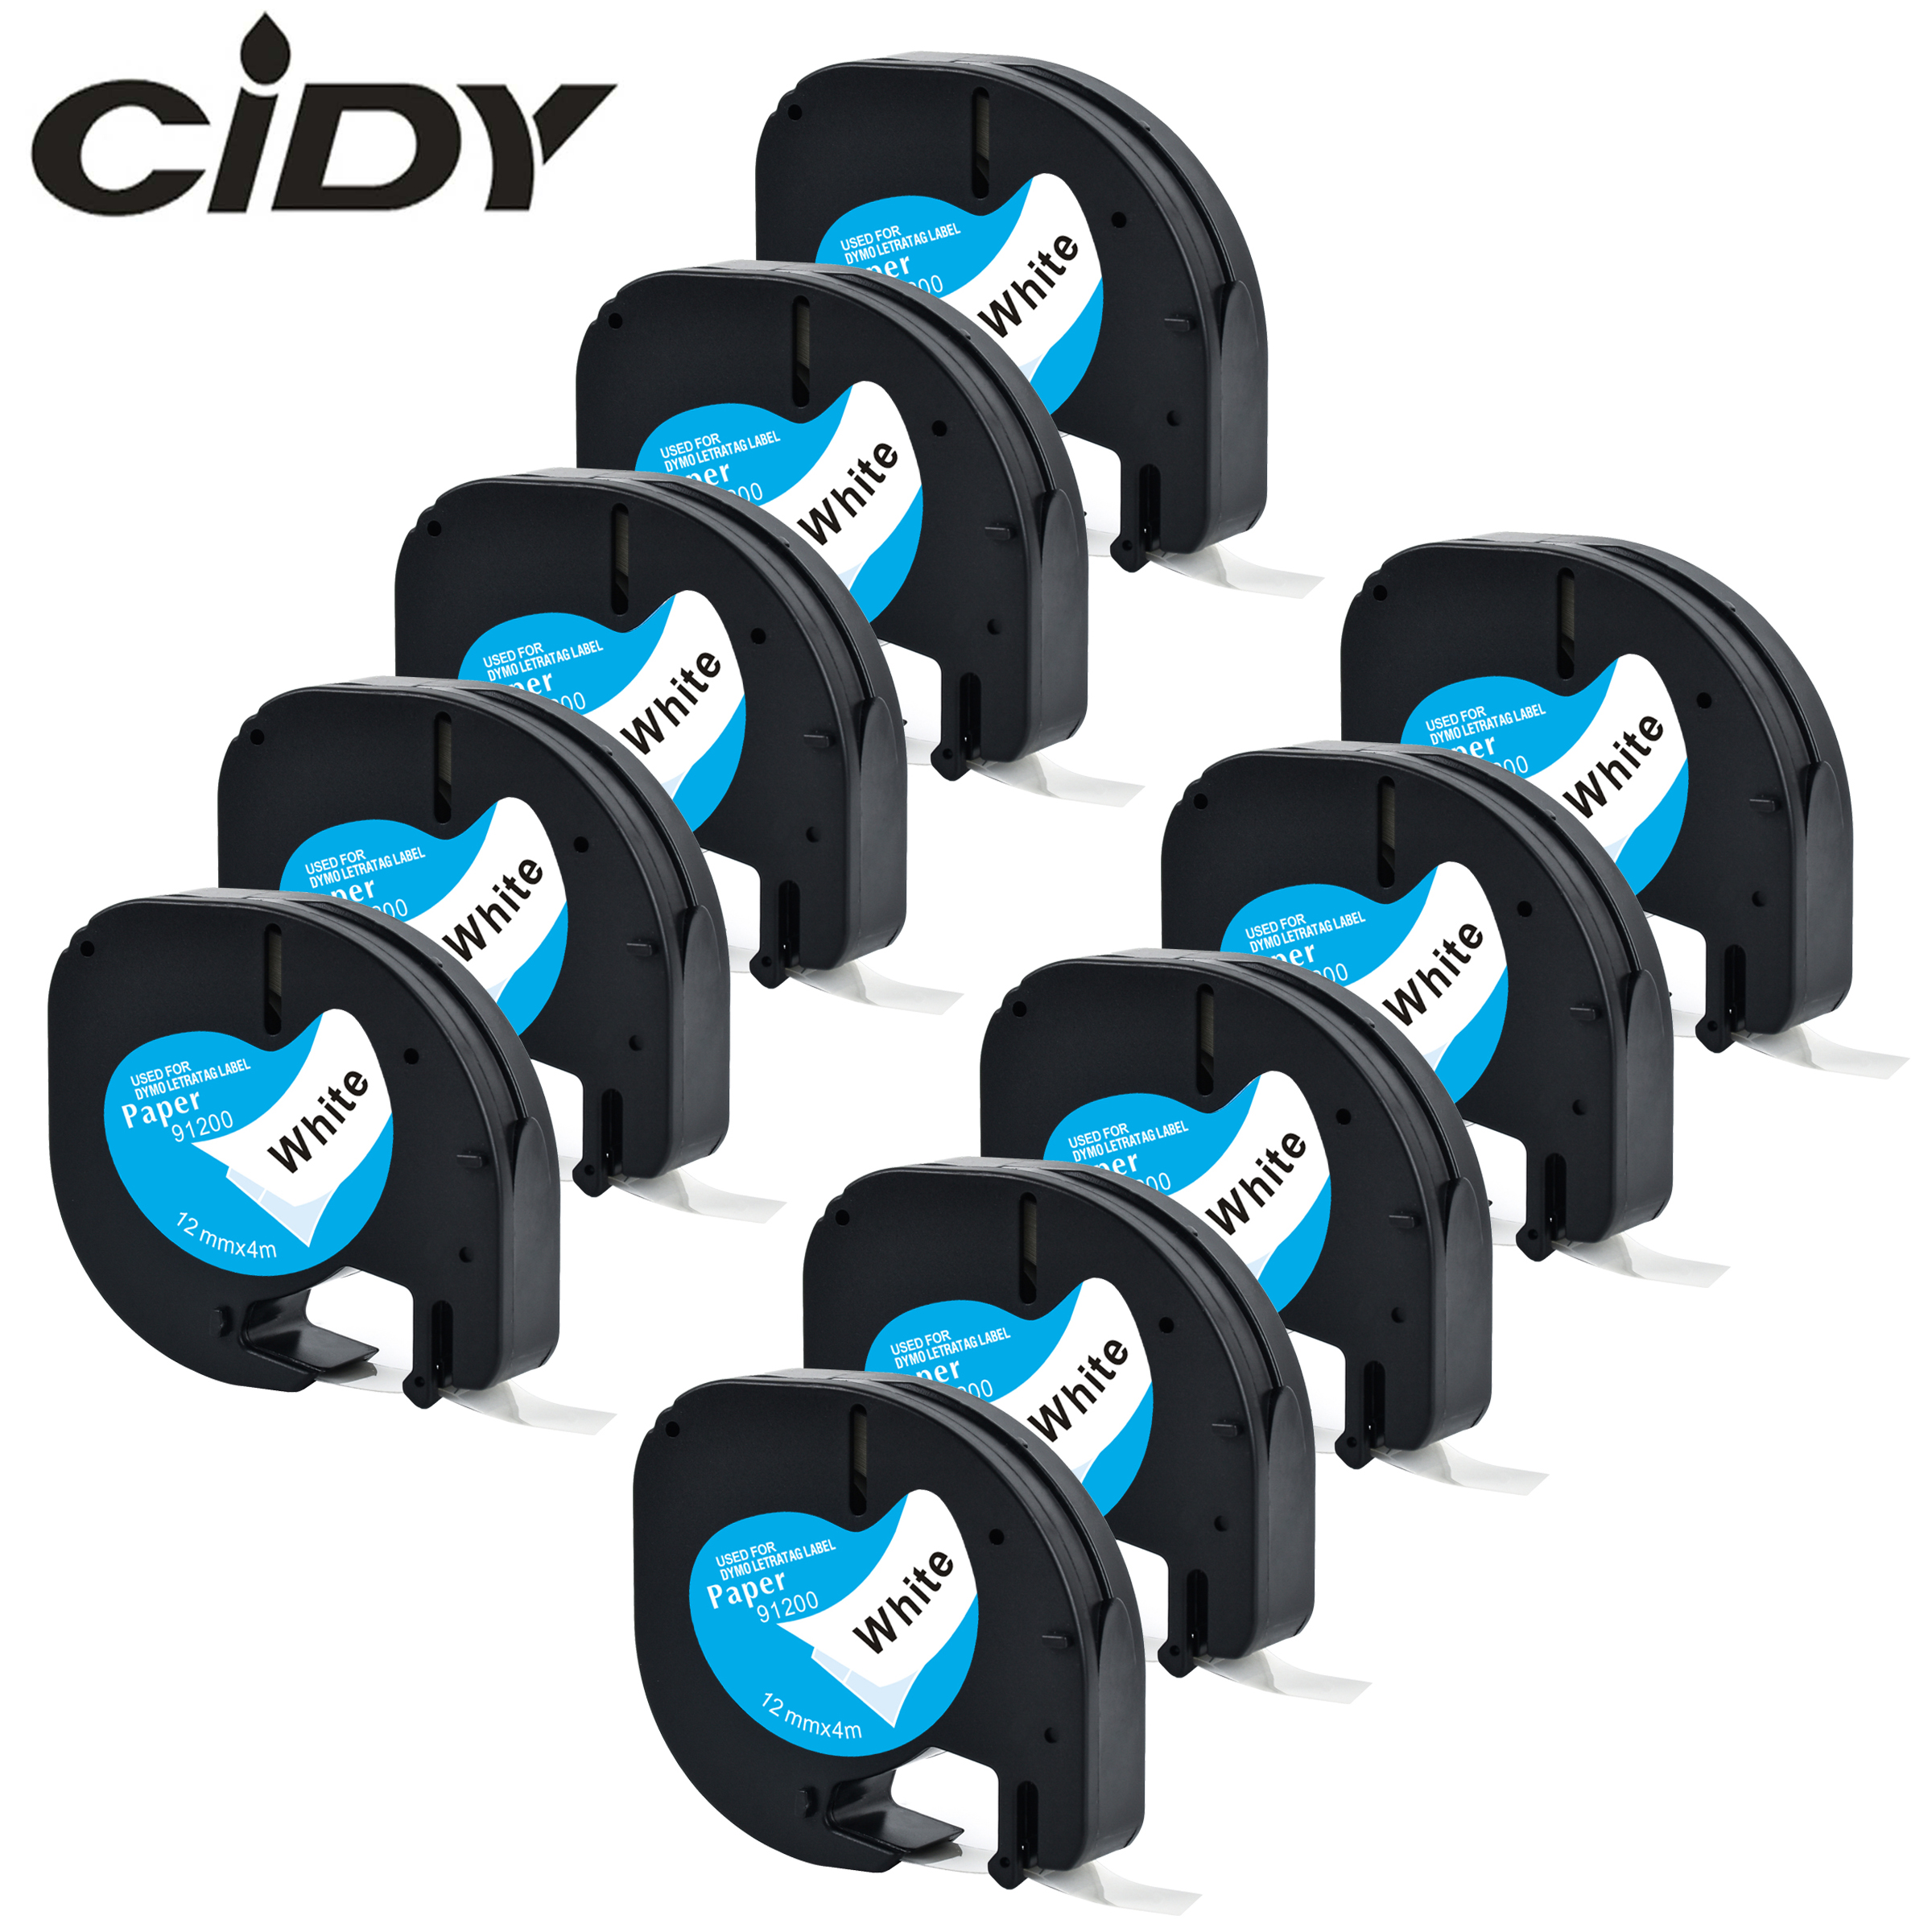 CIDY 10PK LT91200 Compatible Dymo LetraTag LT 91200 <font><b>10697</b></font> 91330 91220 59421 White Paper for Dymo Label Tapes for LT-100H image